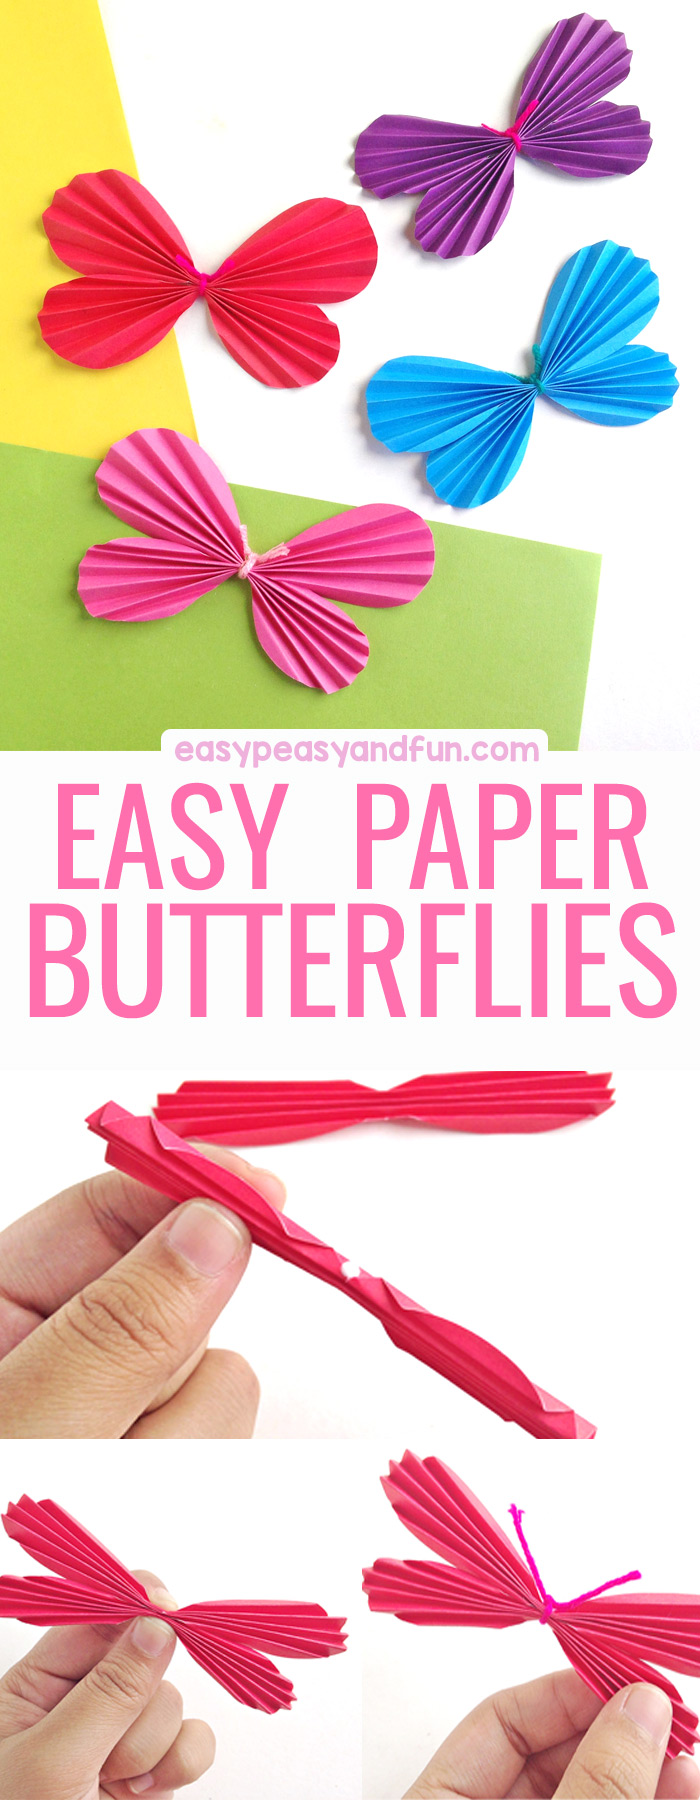 How to Make a Paper Butterfly